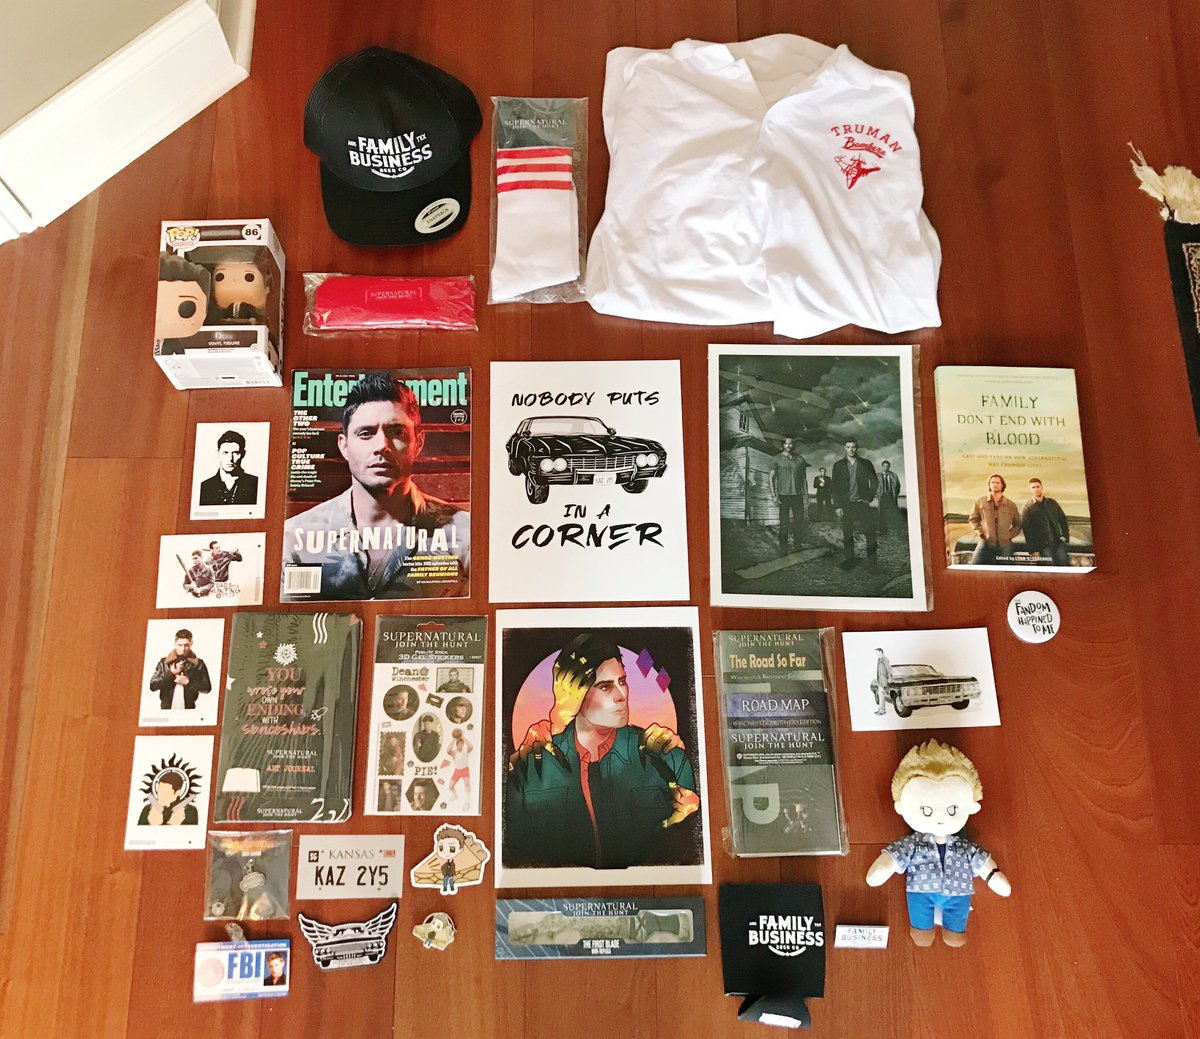 We are so excited to announce our next giveaway themed entirely around Dean Winchester! This giveaway is international and will run through August 26th. Click here to enter: rafflecopter.com/rafl/display/6…